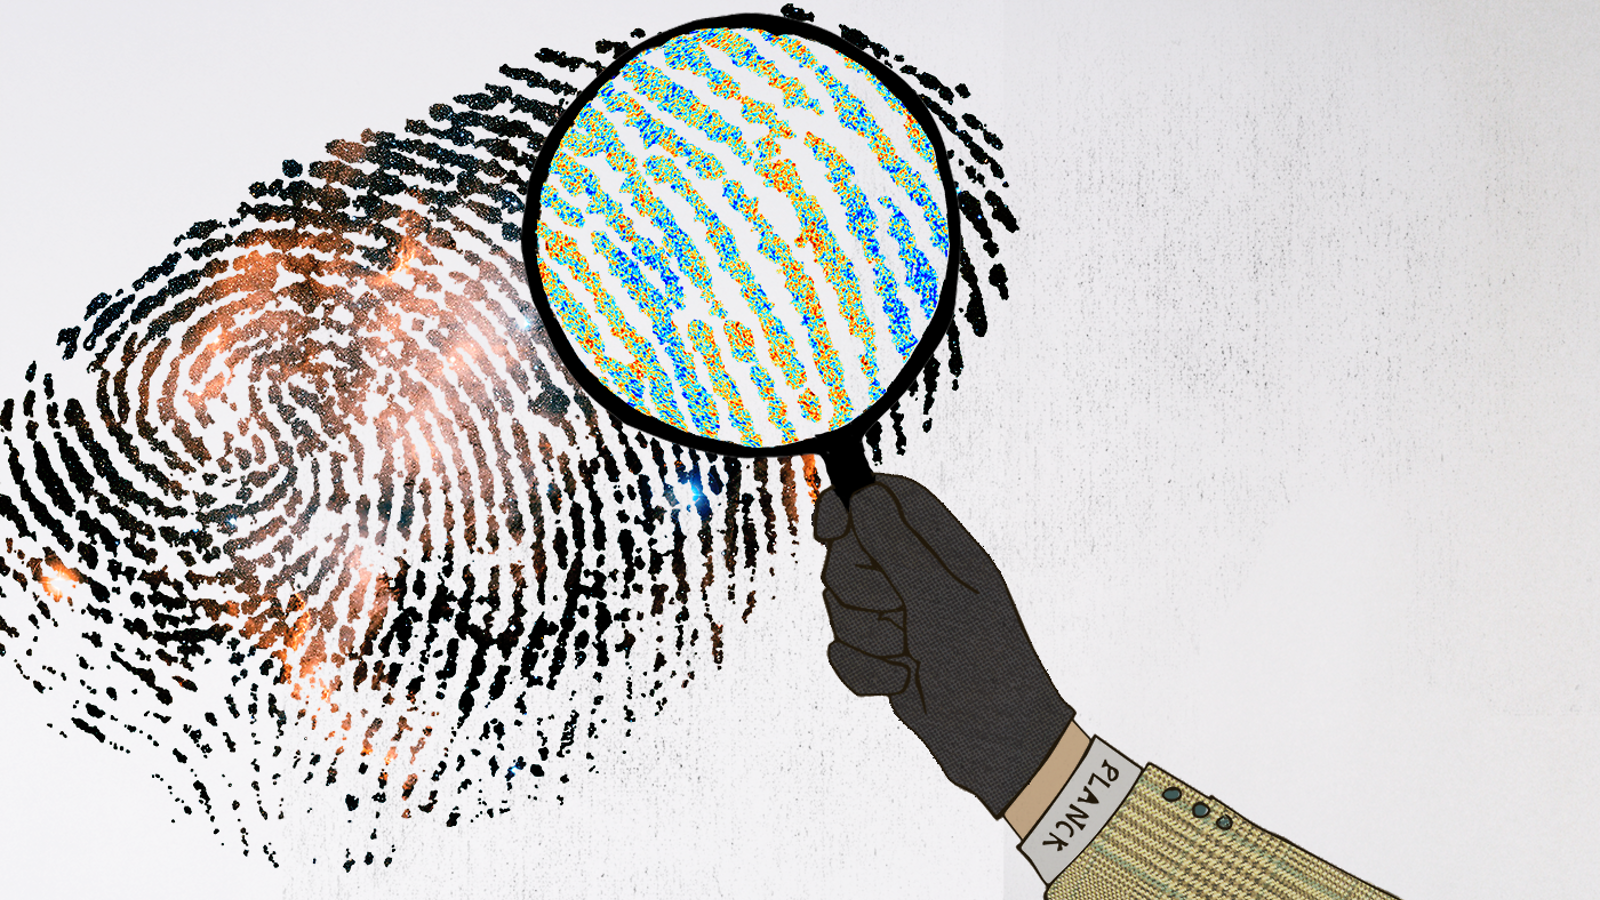 Illustration of Detective Planck using magnifying glass over finger print